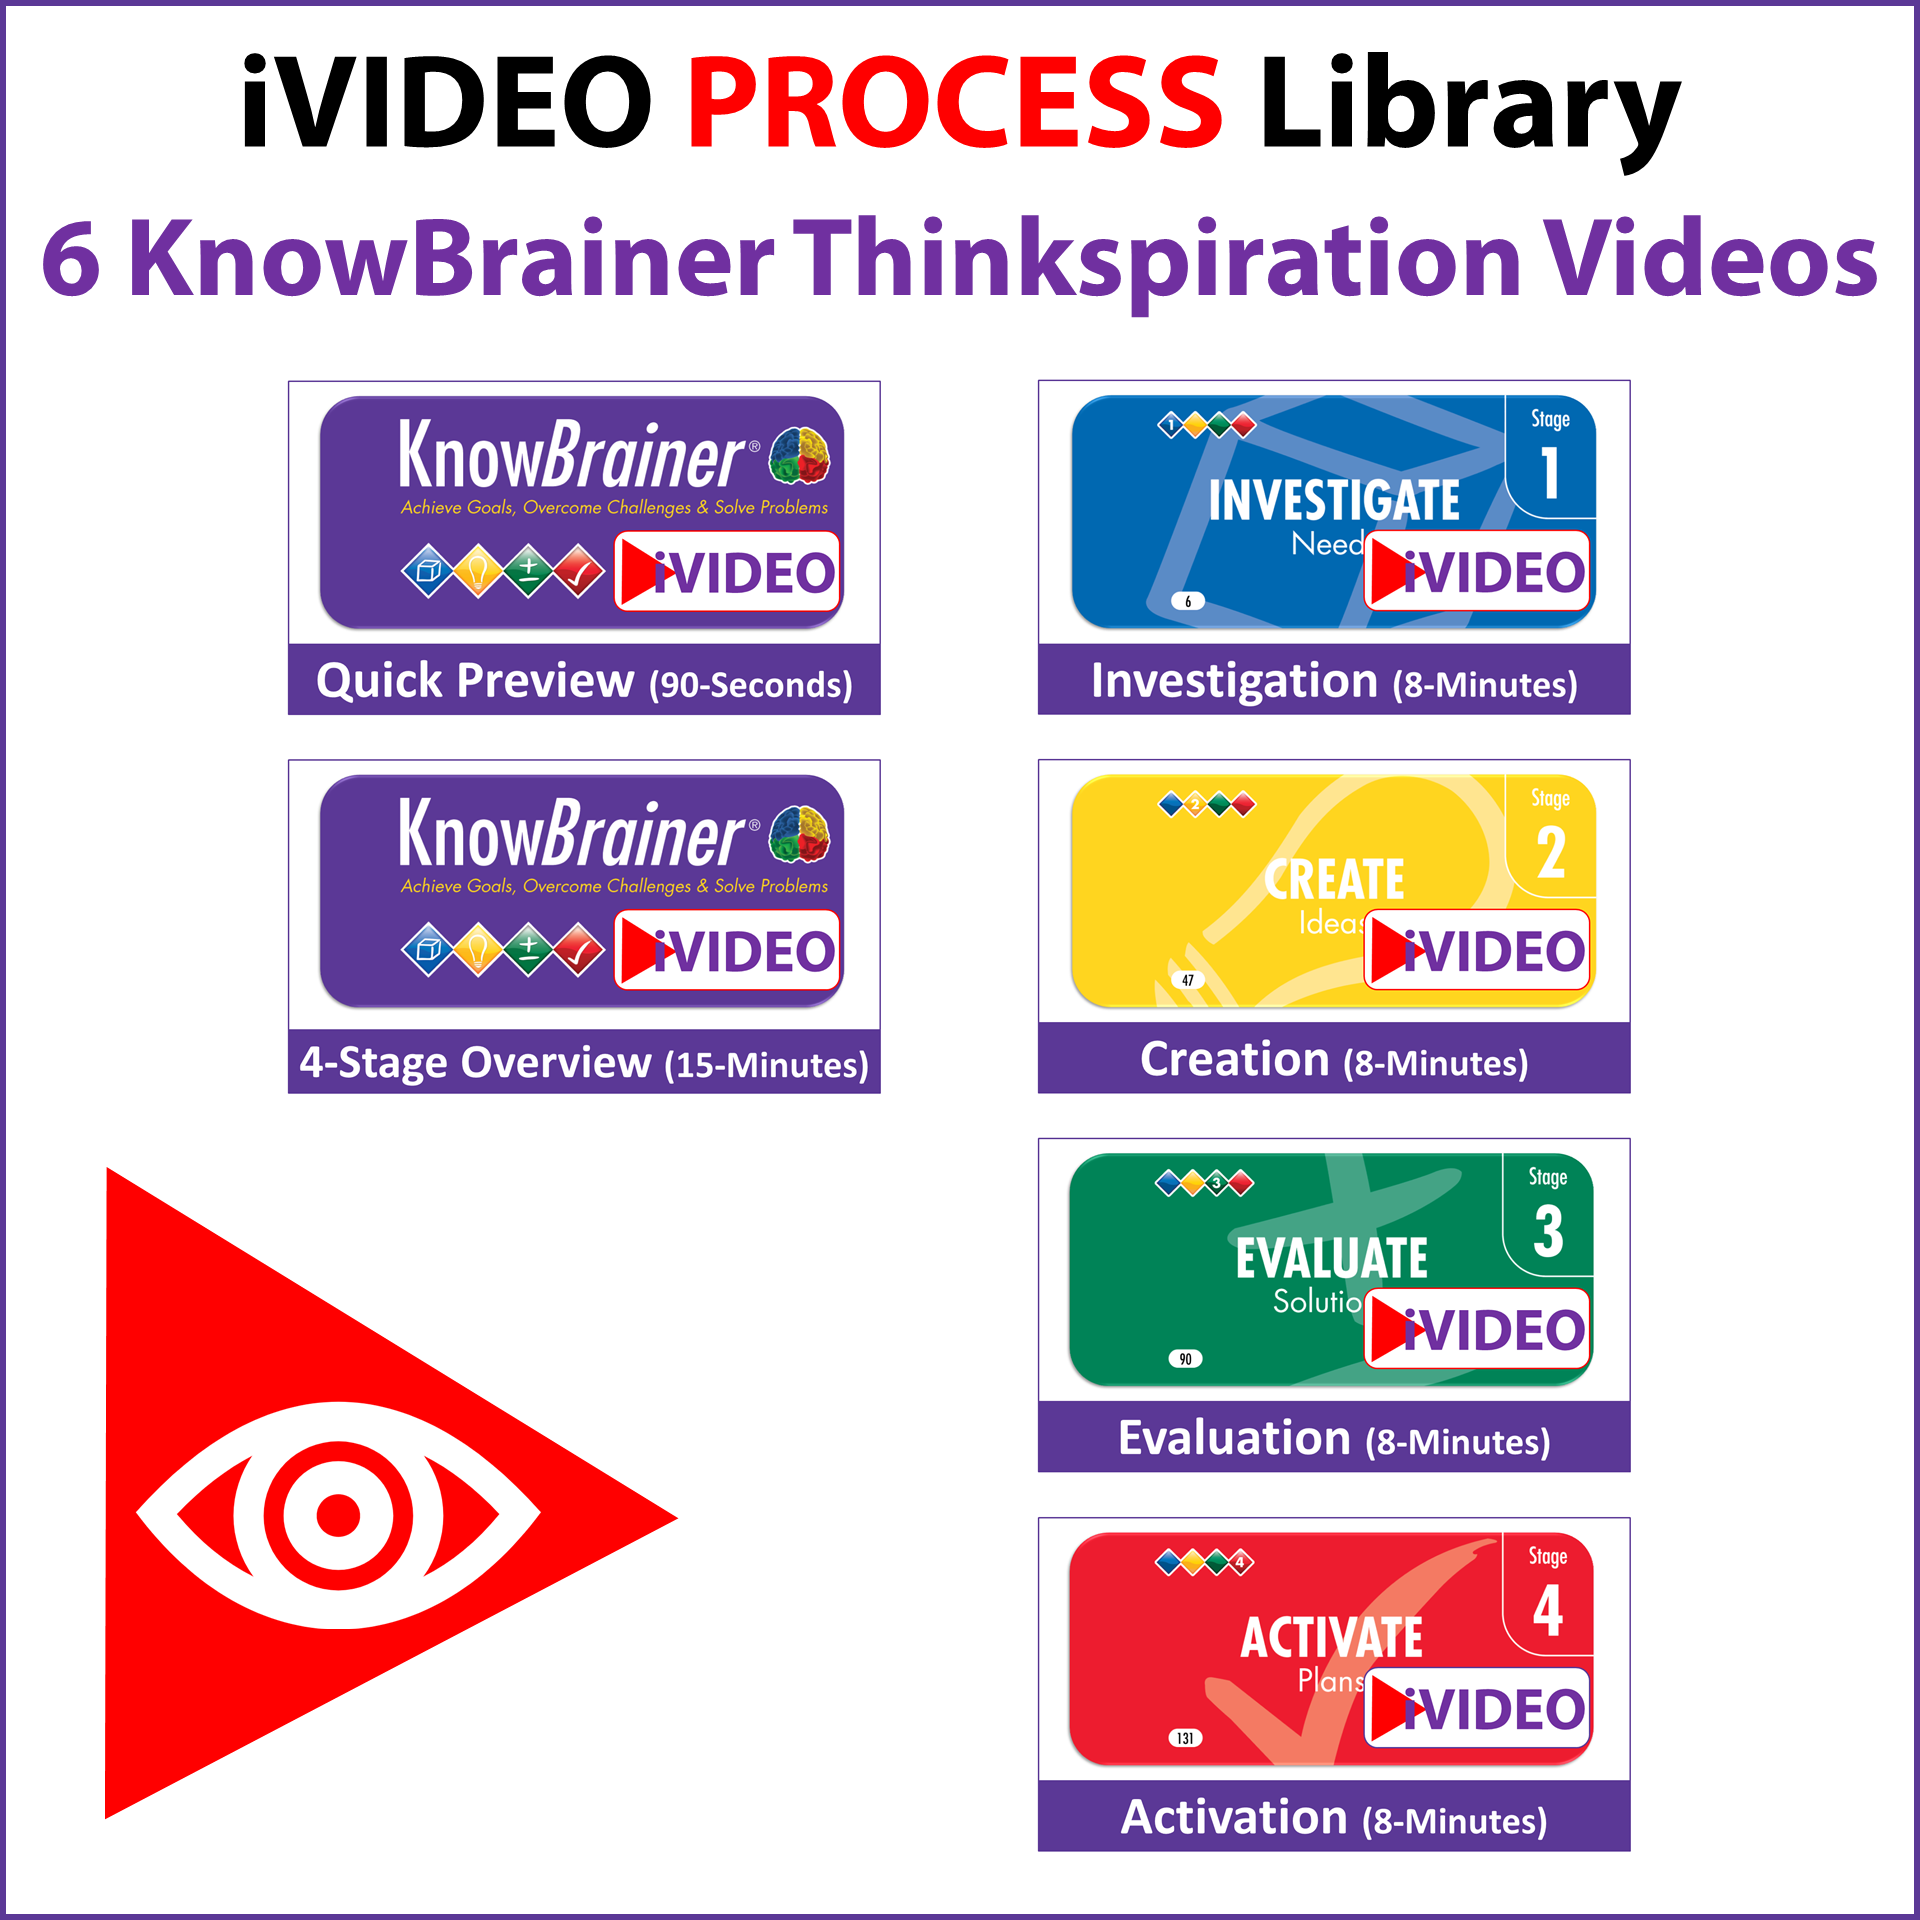 iVIDEO PROCESS Library KnowBrainer Thinkspiration Videos